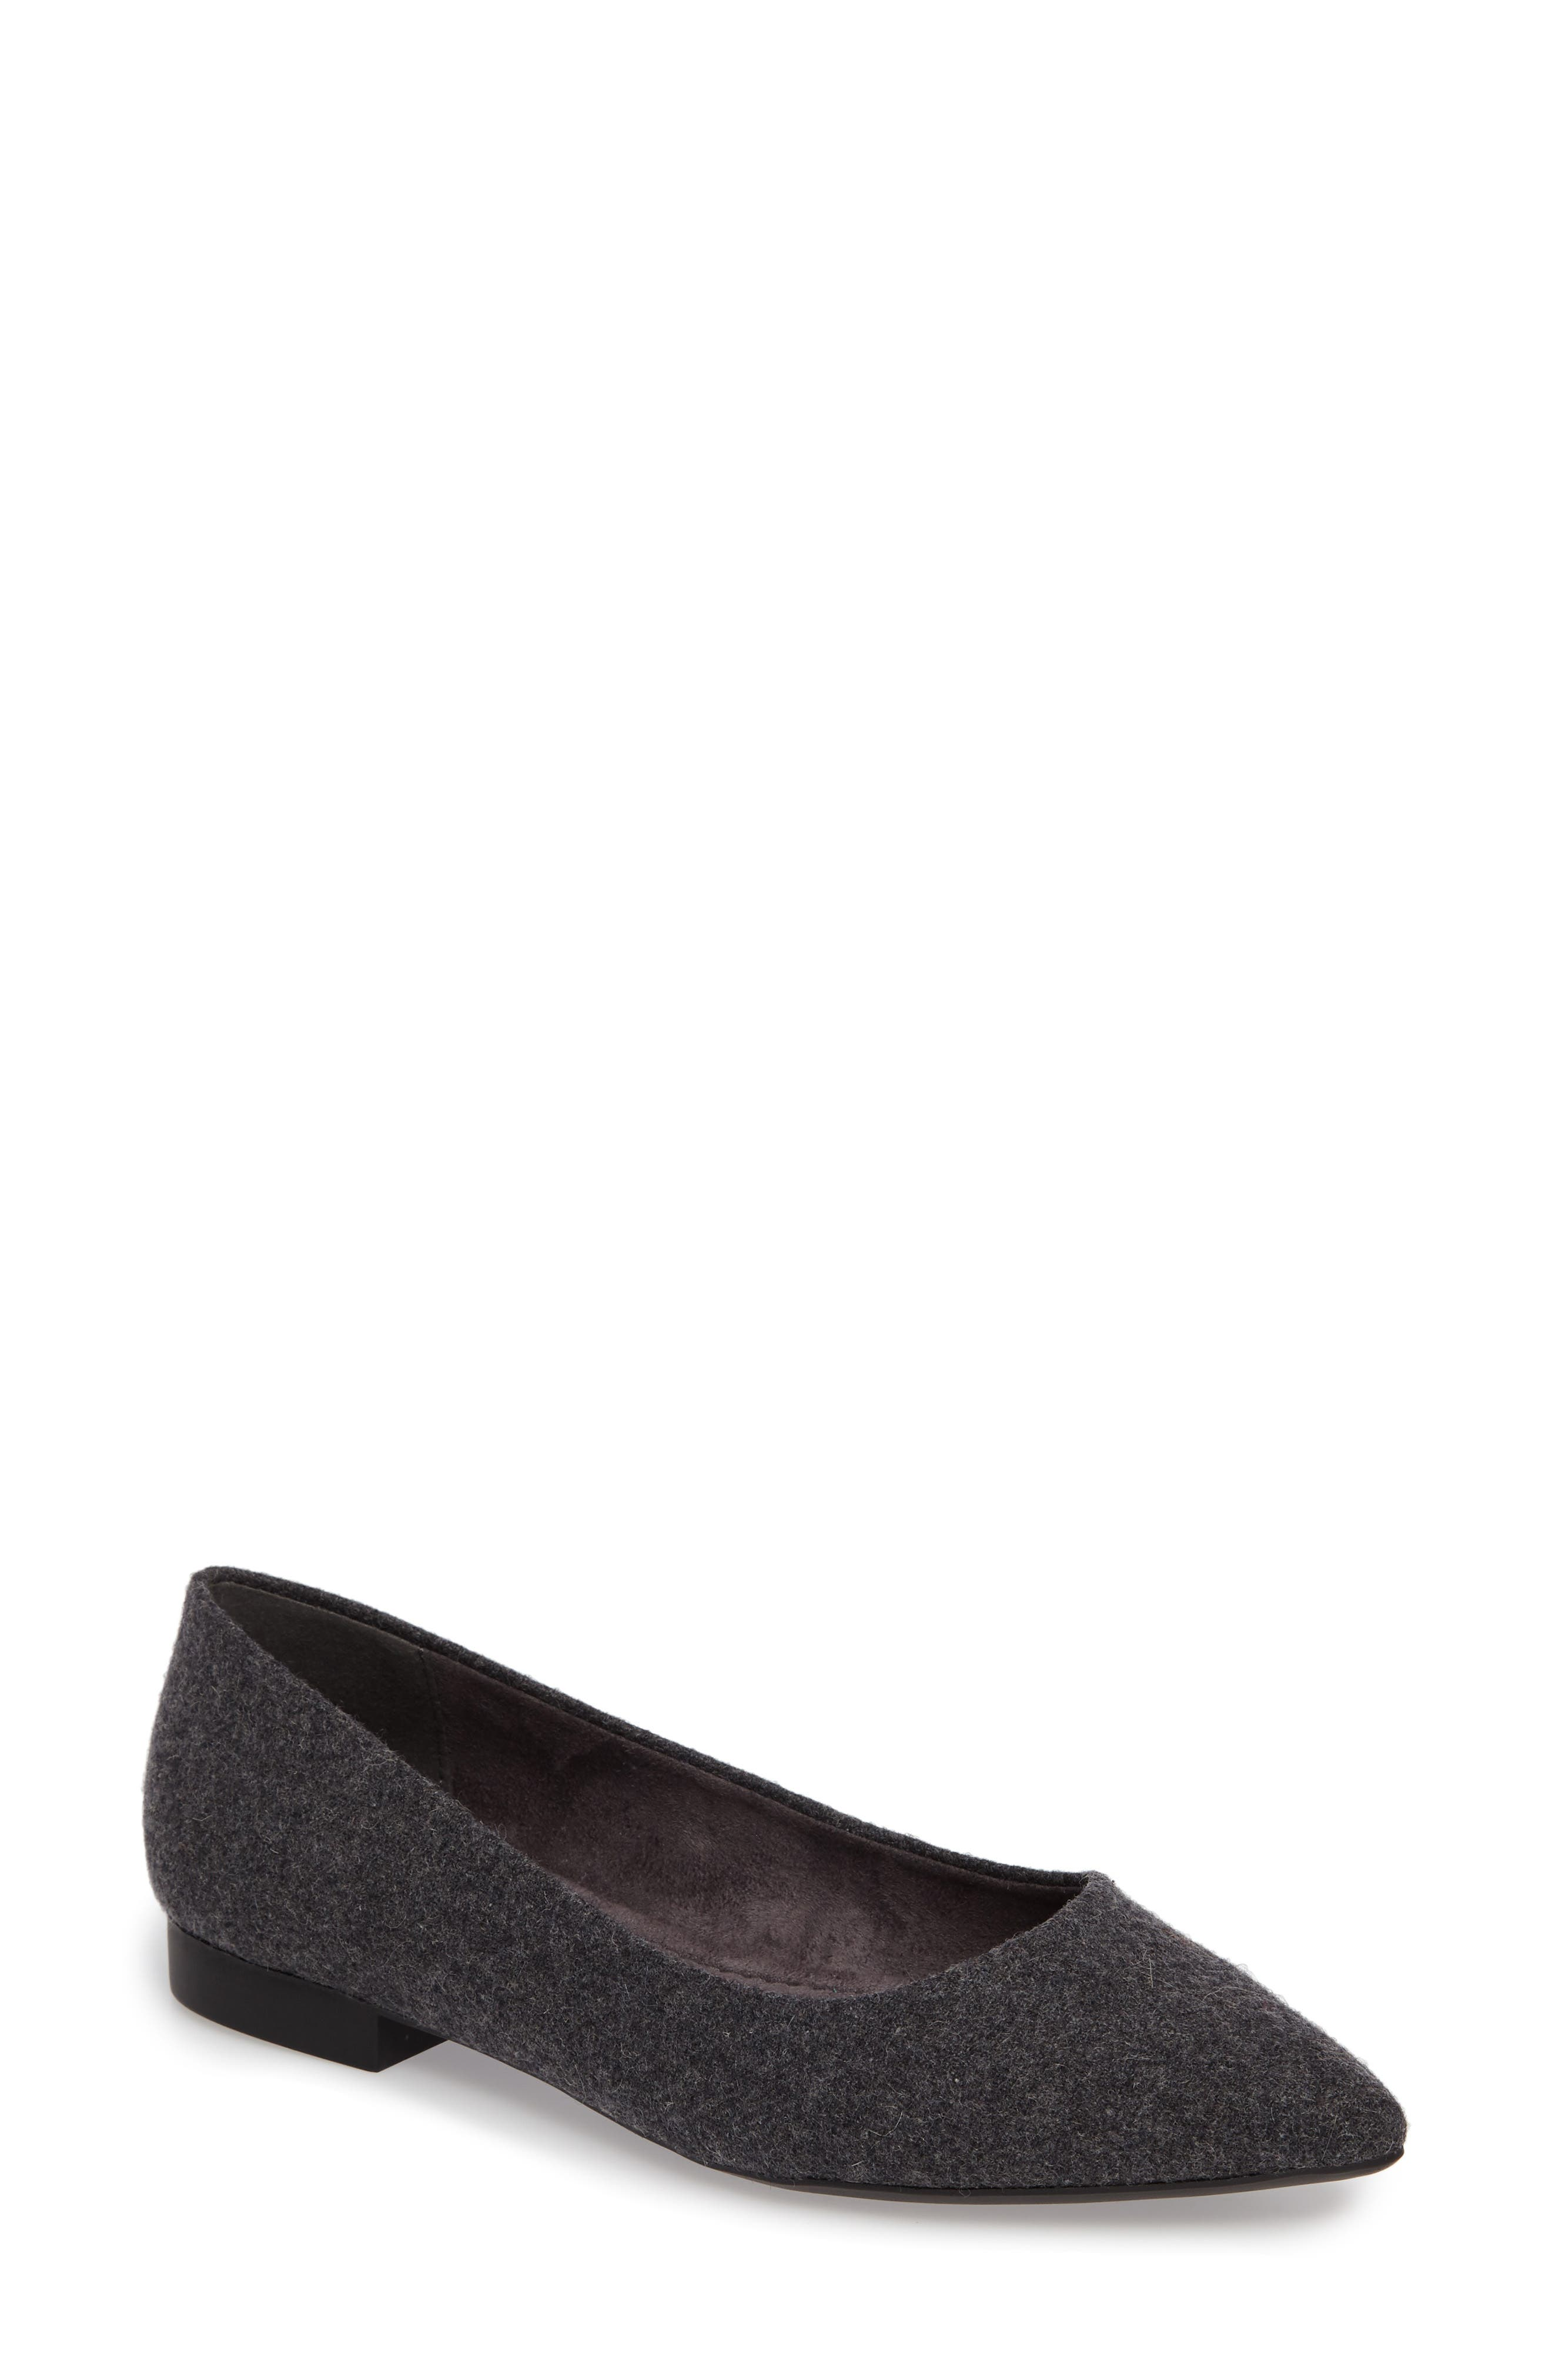 'Vivien' Pointy Toe Flat,                         Main,                         color, GREY FLANNEL FABRIC